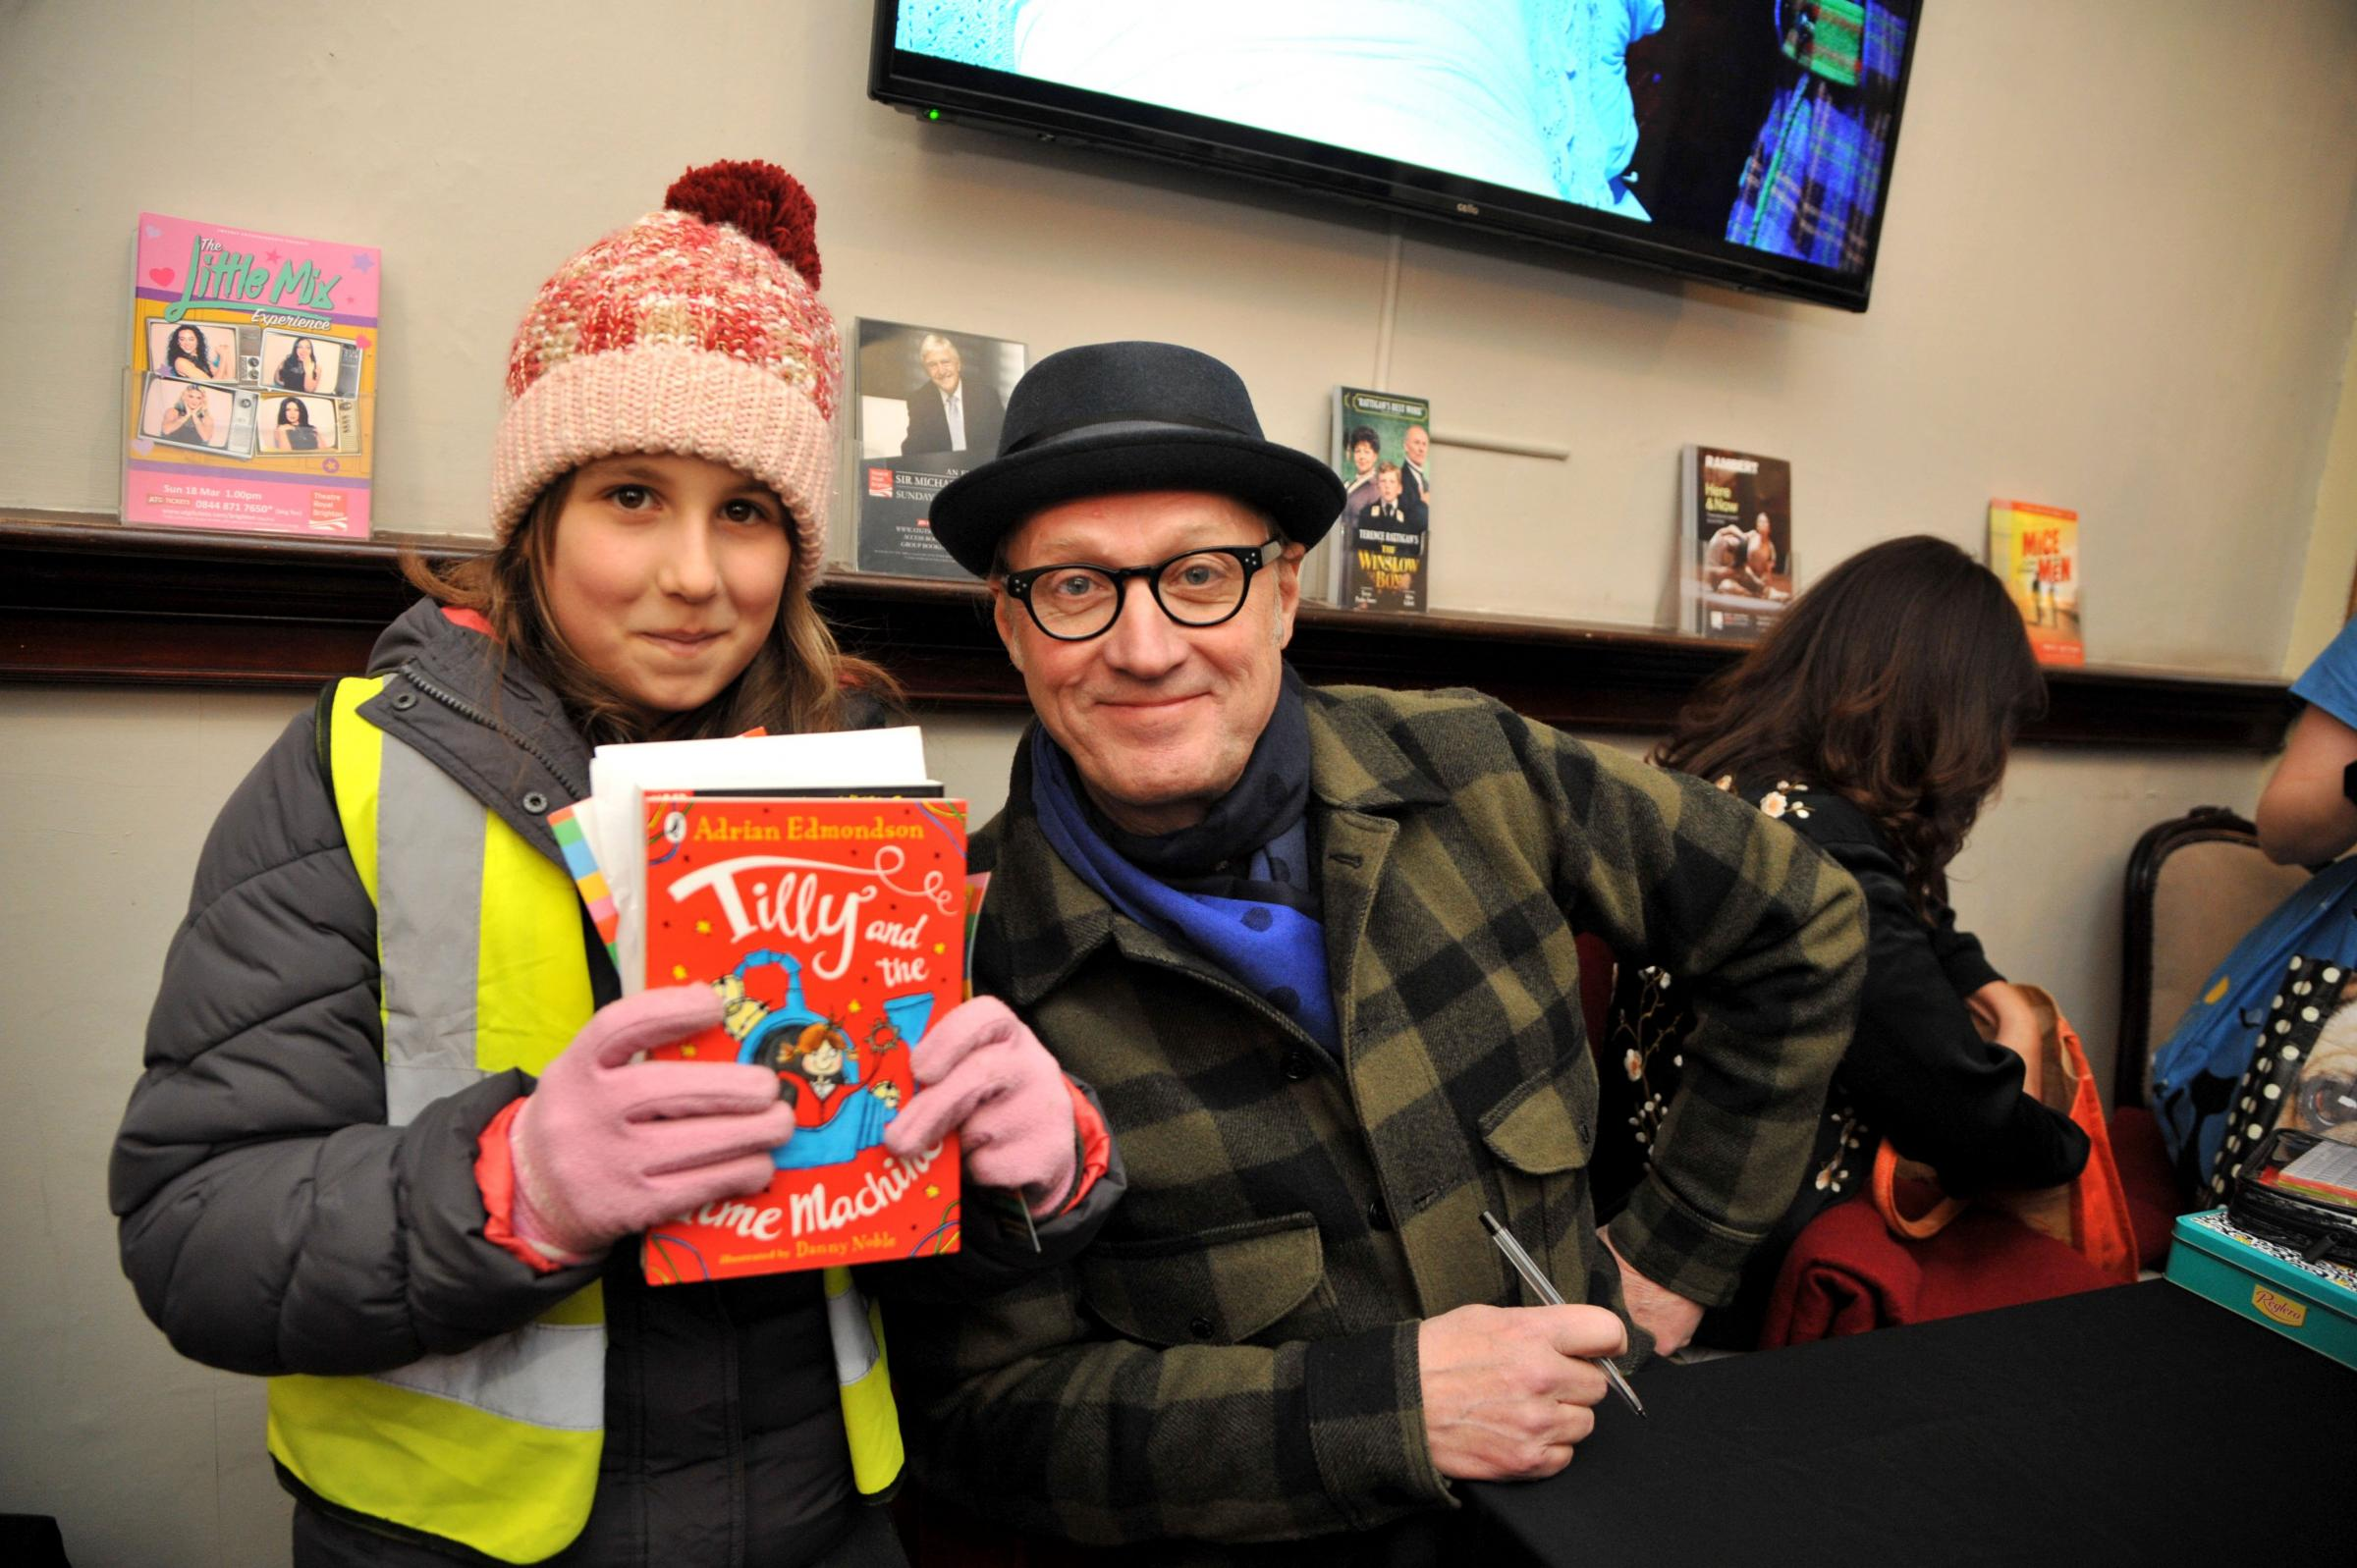 Lucia Wight, 11, from Mile Oak Primary School, with Adrian Edmondson